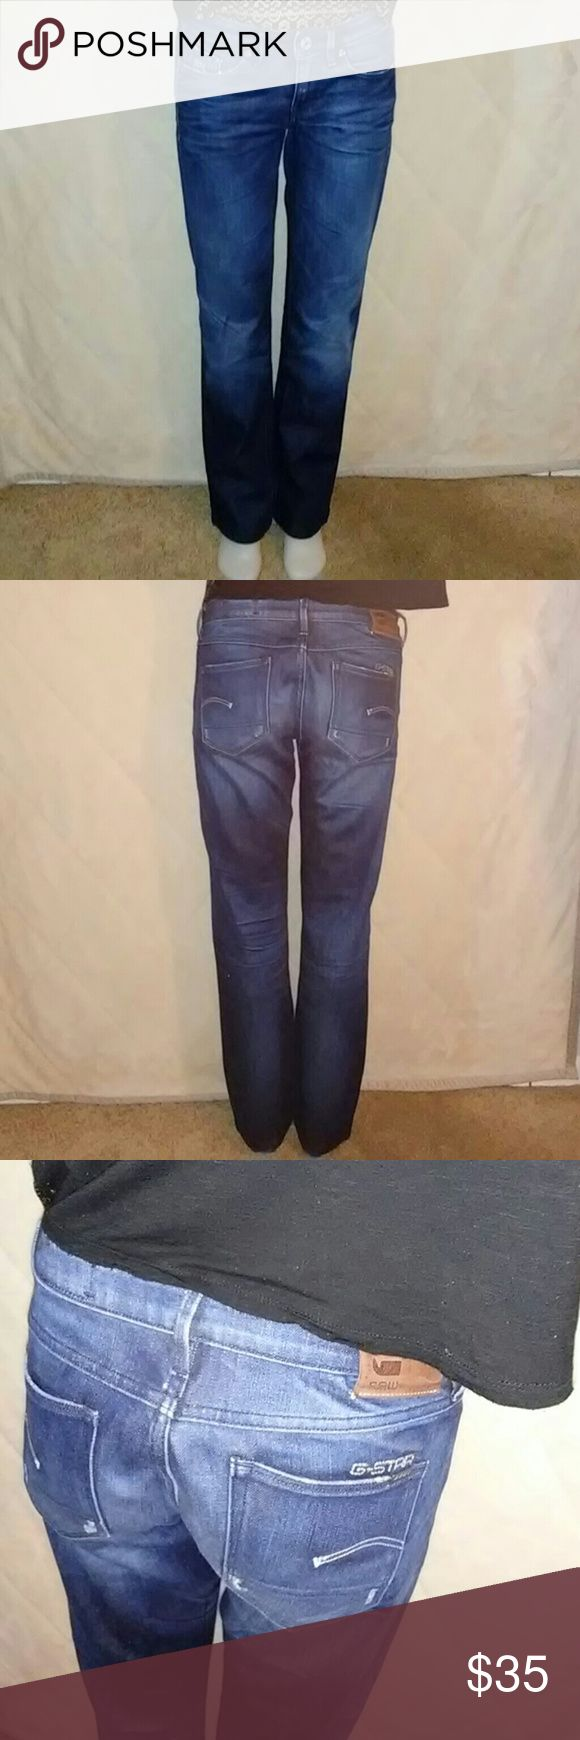 Women's G Star Jeans 3301 Raw They are in great pre-owned condition with light distressing on the pockets and the back of the cuffs. The jeans are size 27x32 - 3301 straight comfort ranch denim miner wash. G-Star Jeans Straight Leg